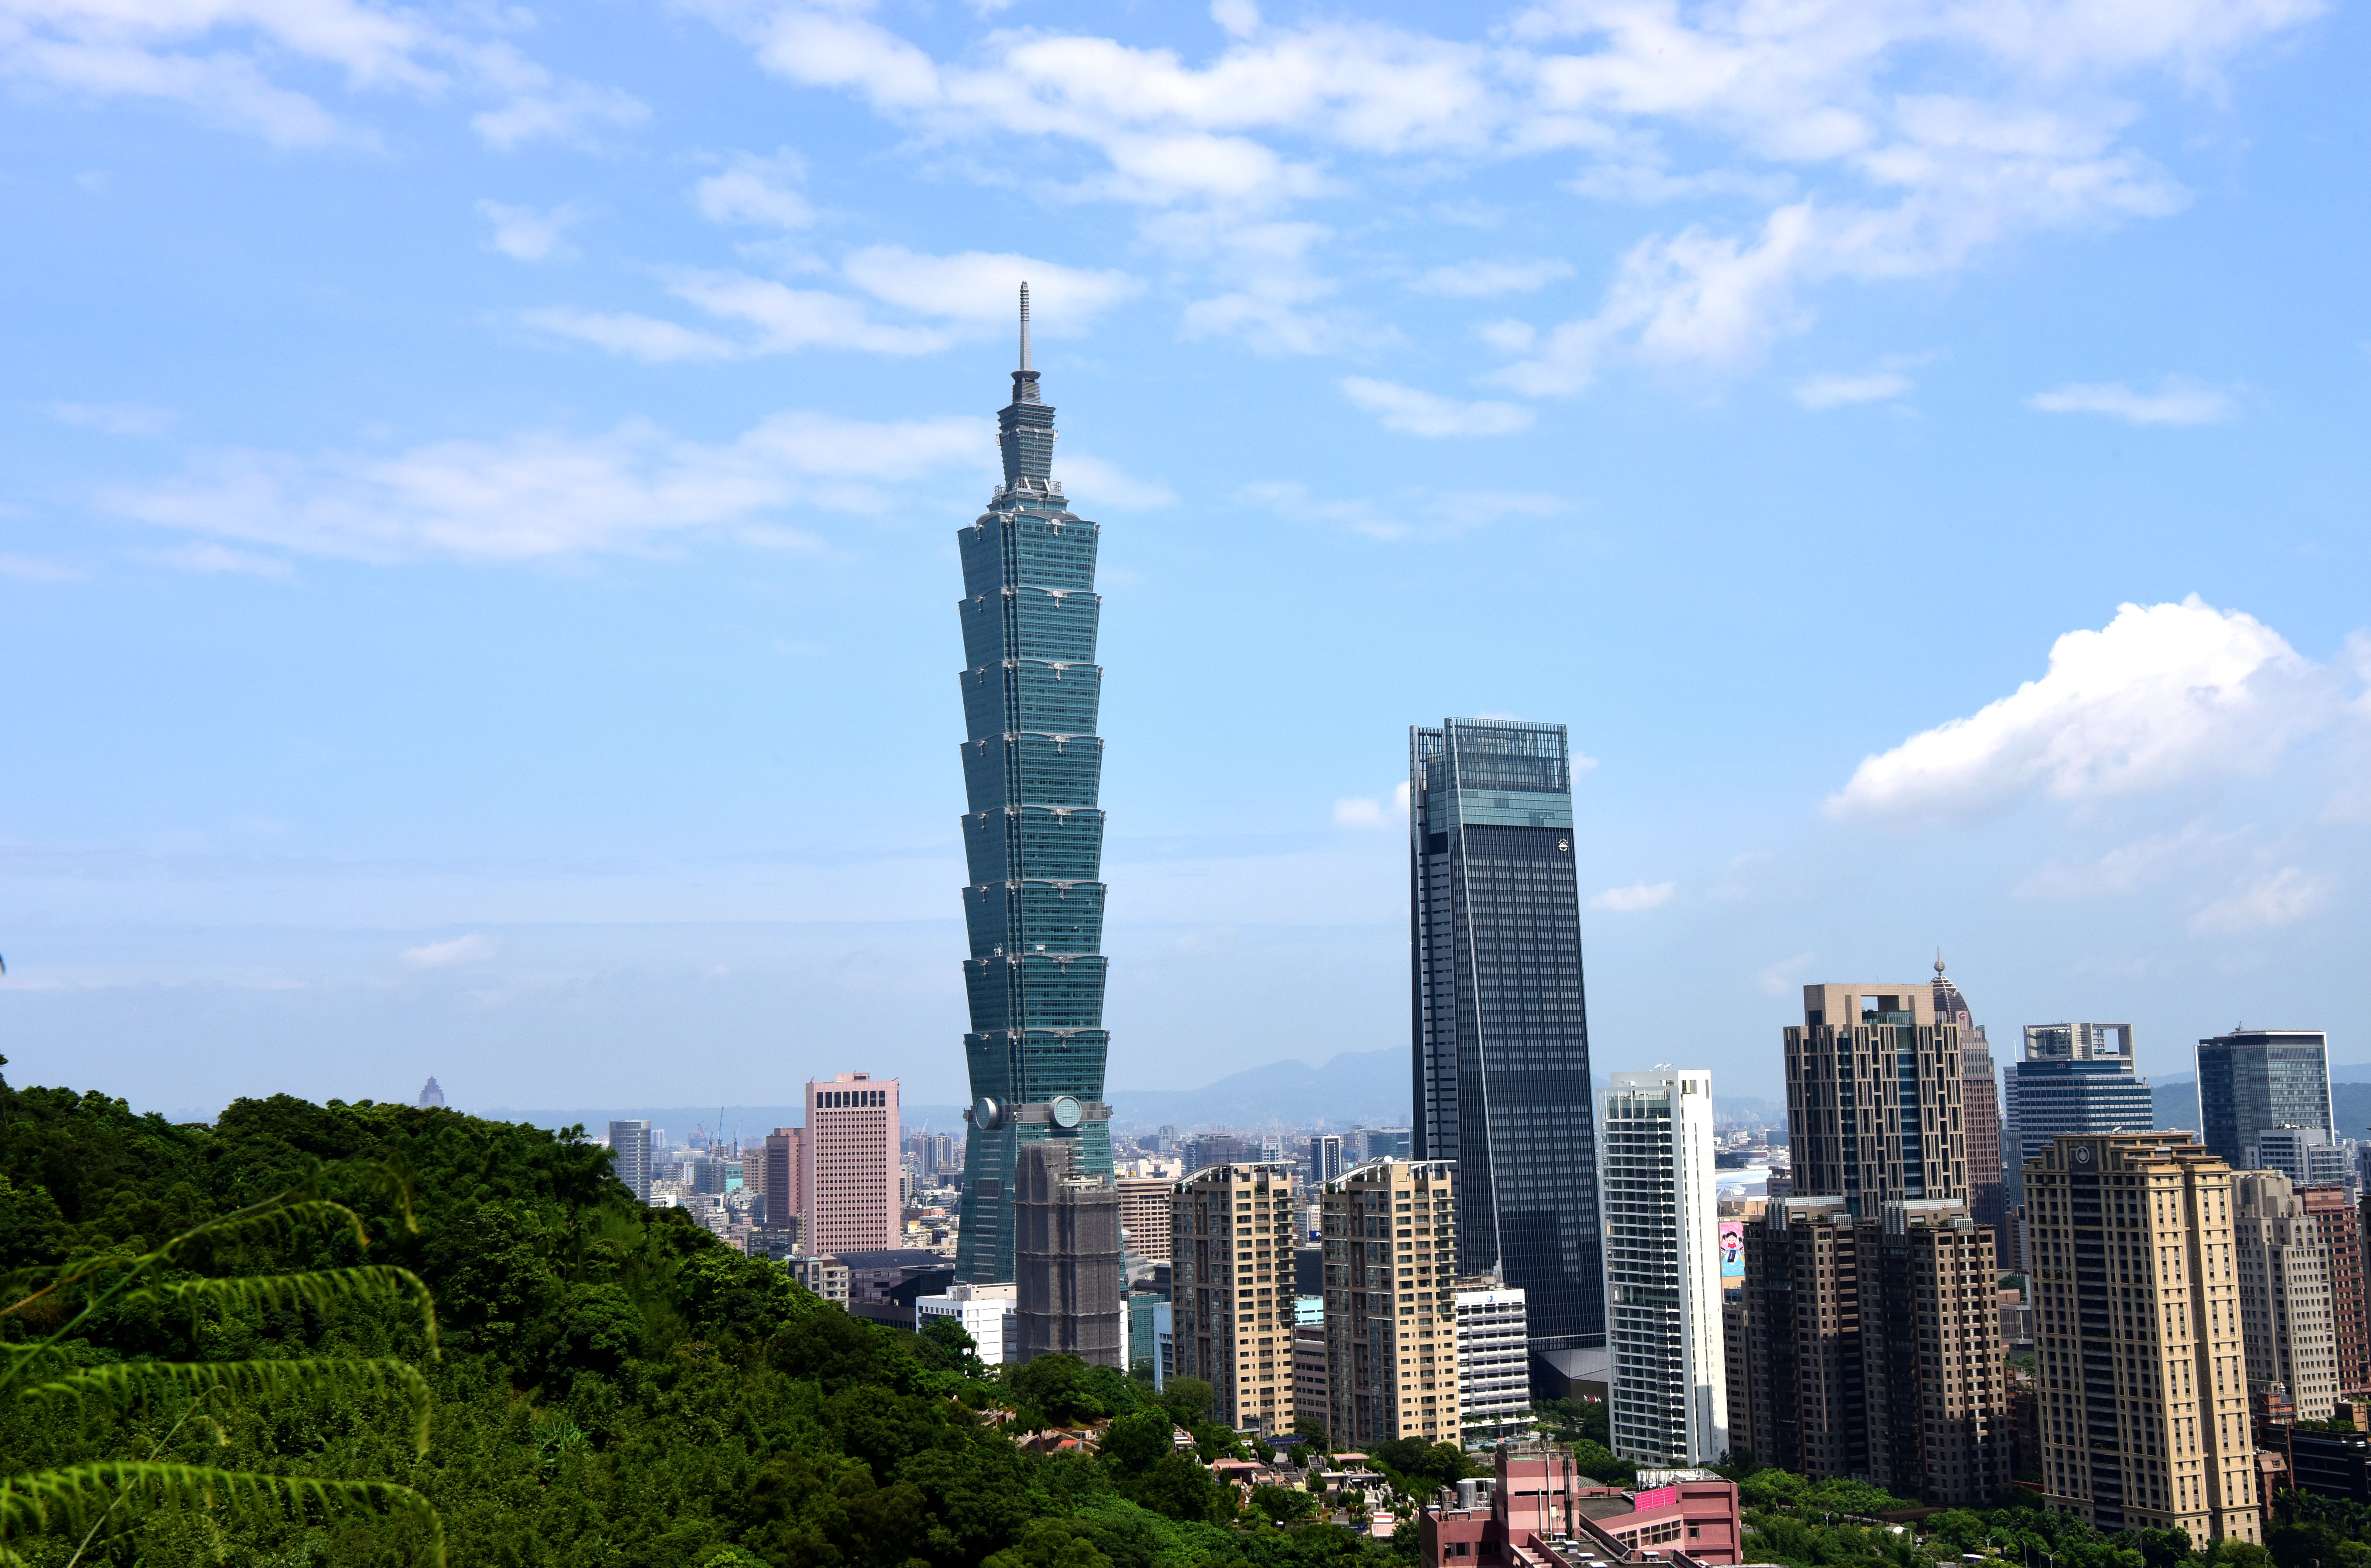 U.S. told to immediately stop Taiwan arms sales - Xinhua | English.news.cn